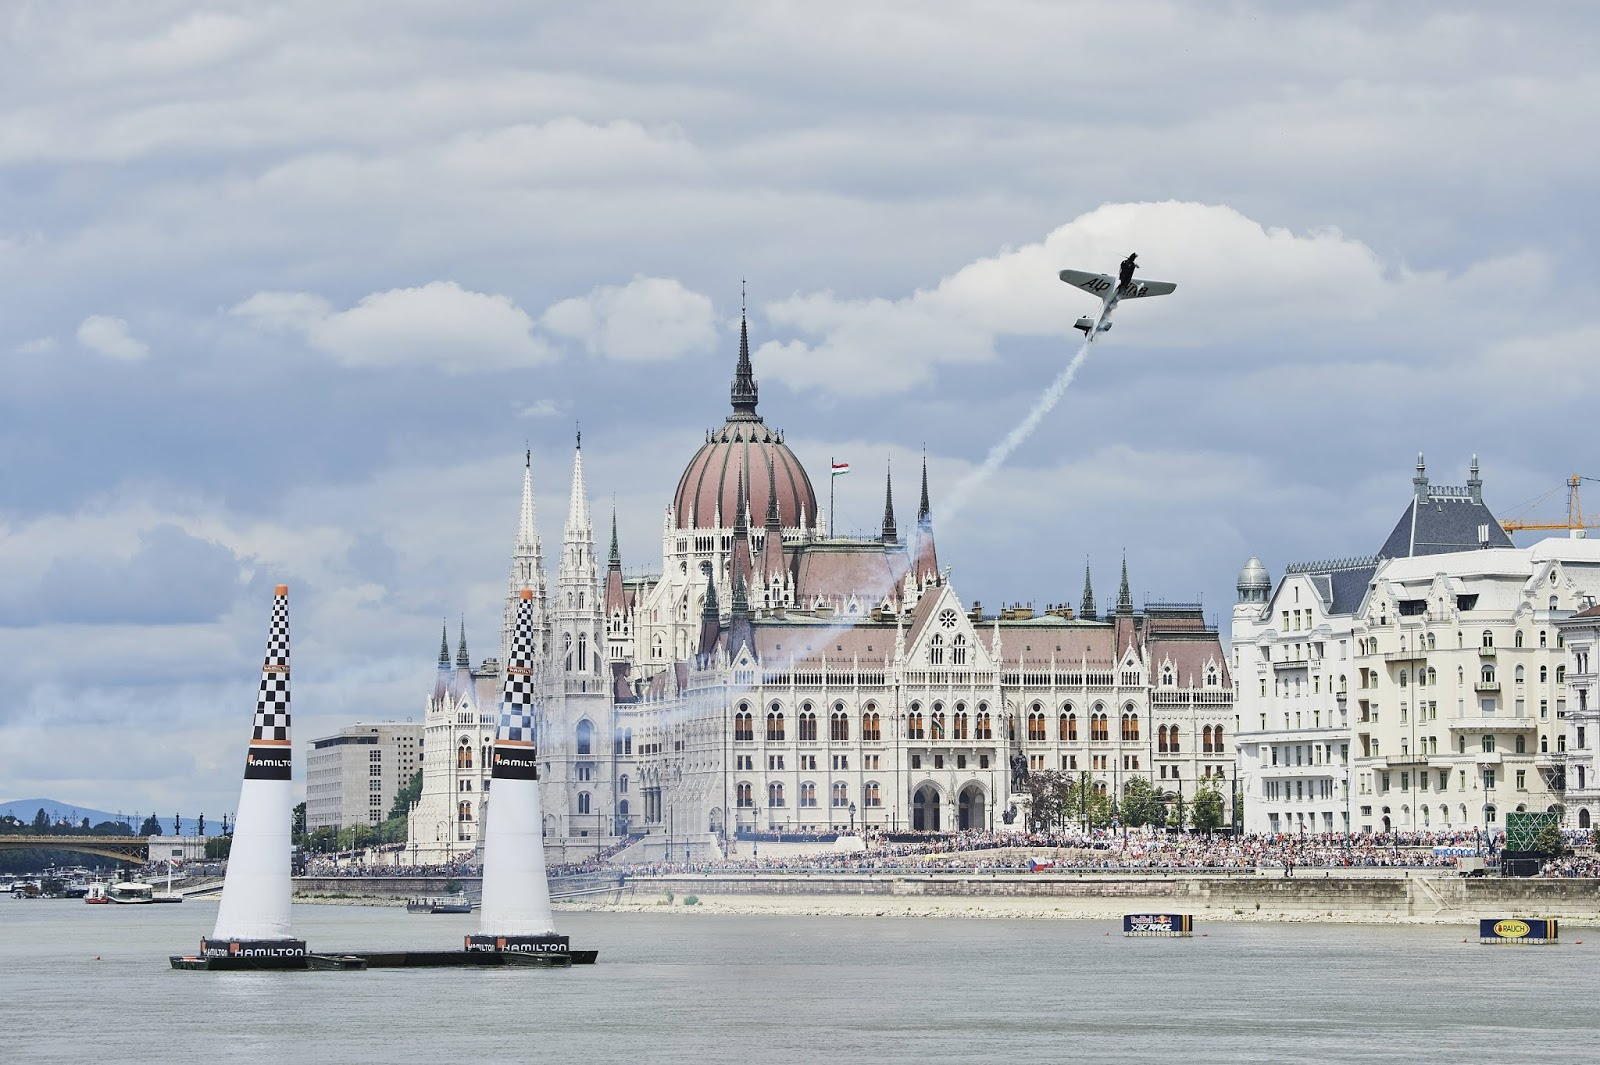 Hlcopters Magazine Blog: Classic clash on the Danube: Red